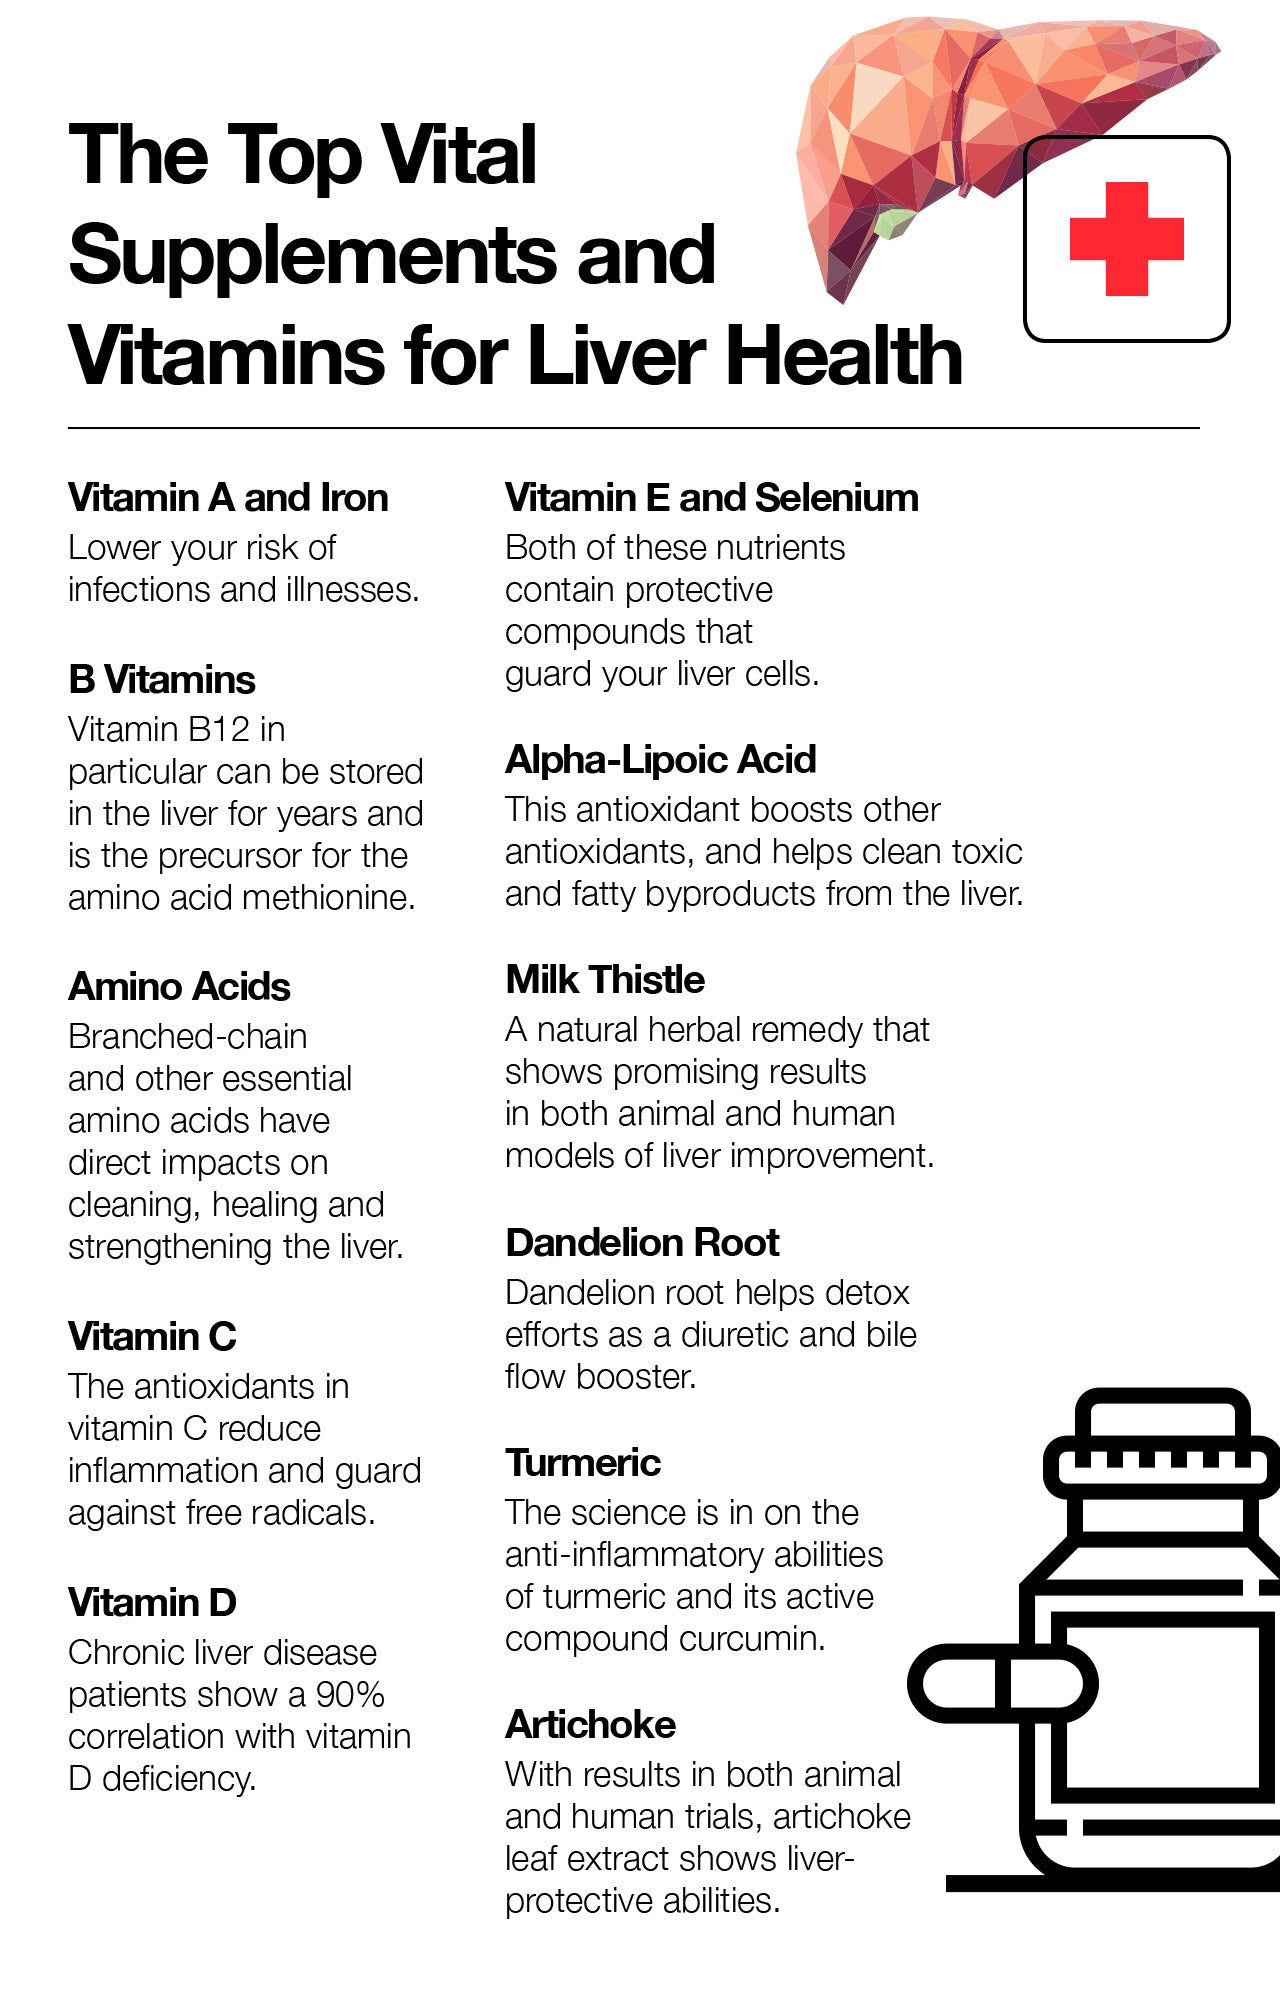 The Top Vital Supplements and Vitamins for Liver Health